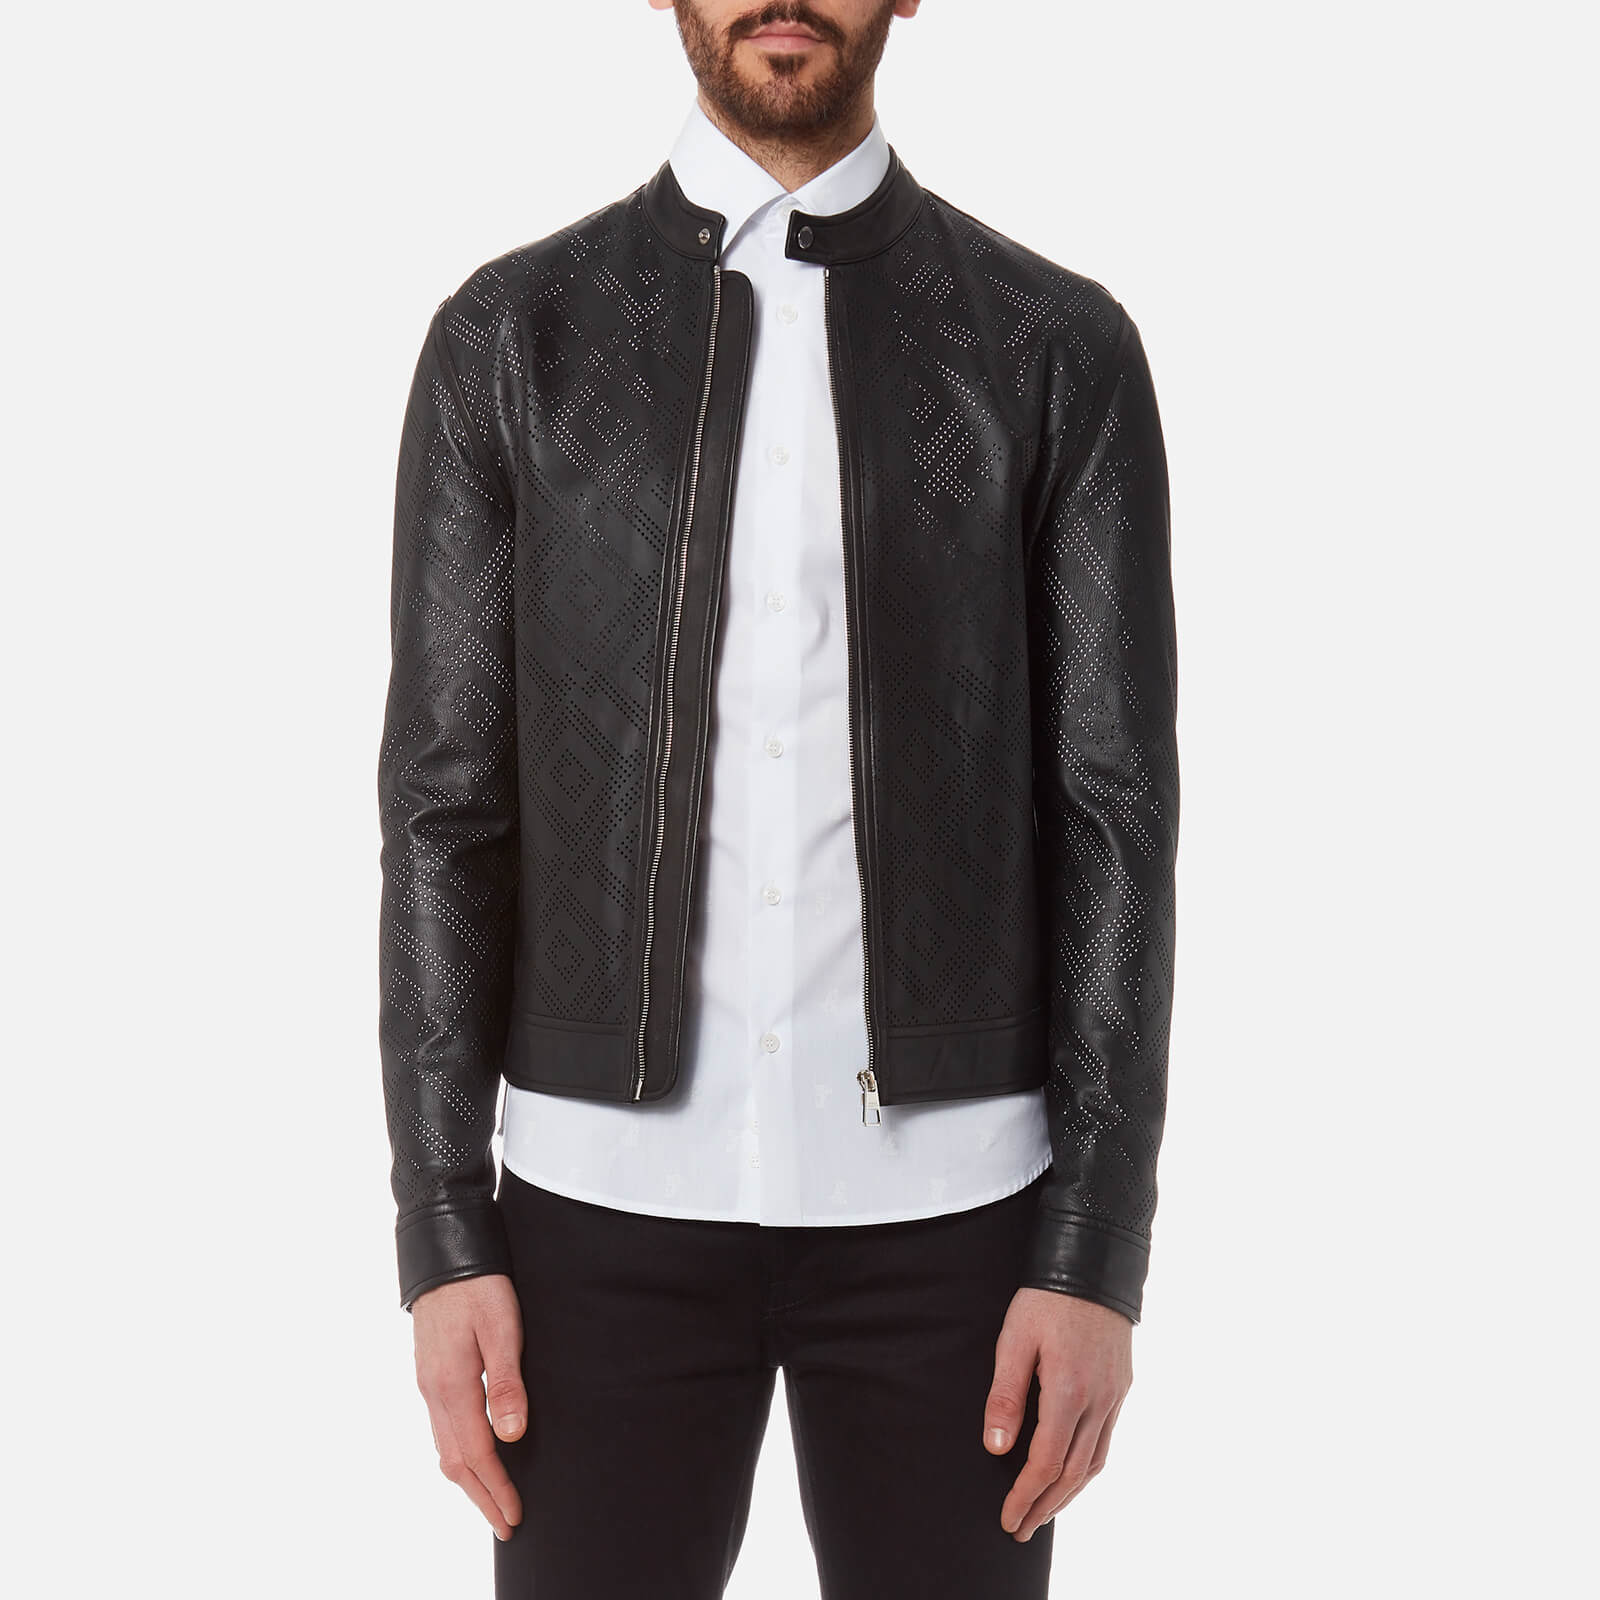 71ae8dad Versace Collection Men's Perforated Leather Jacket - Nero